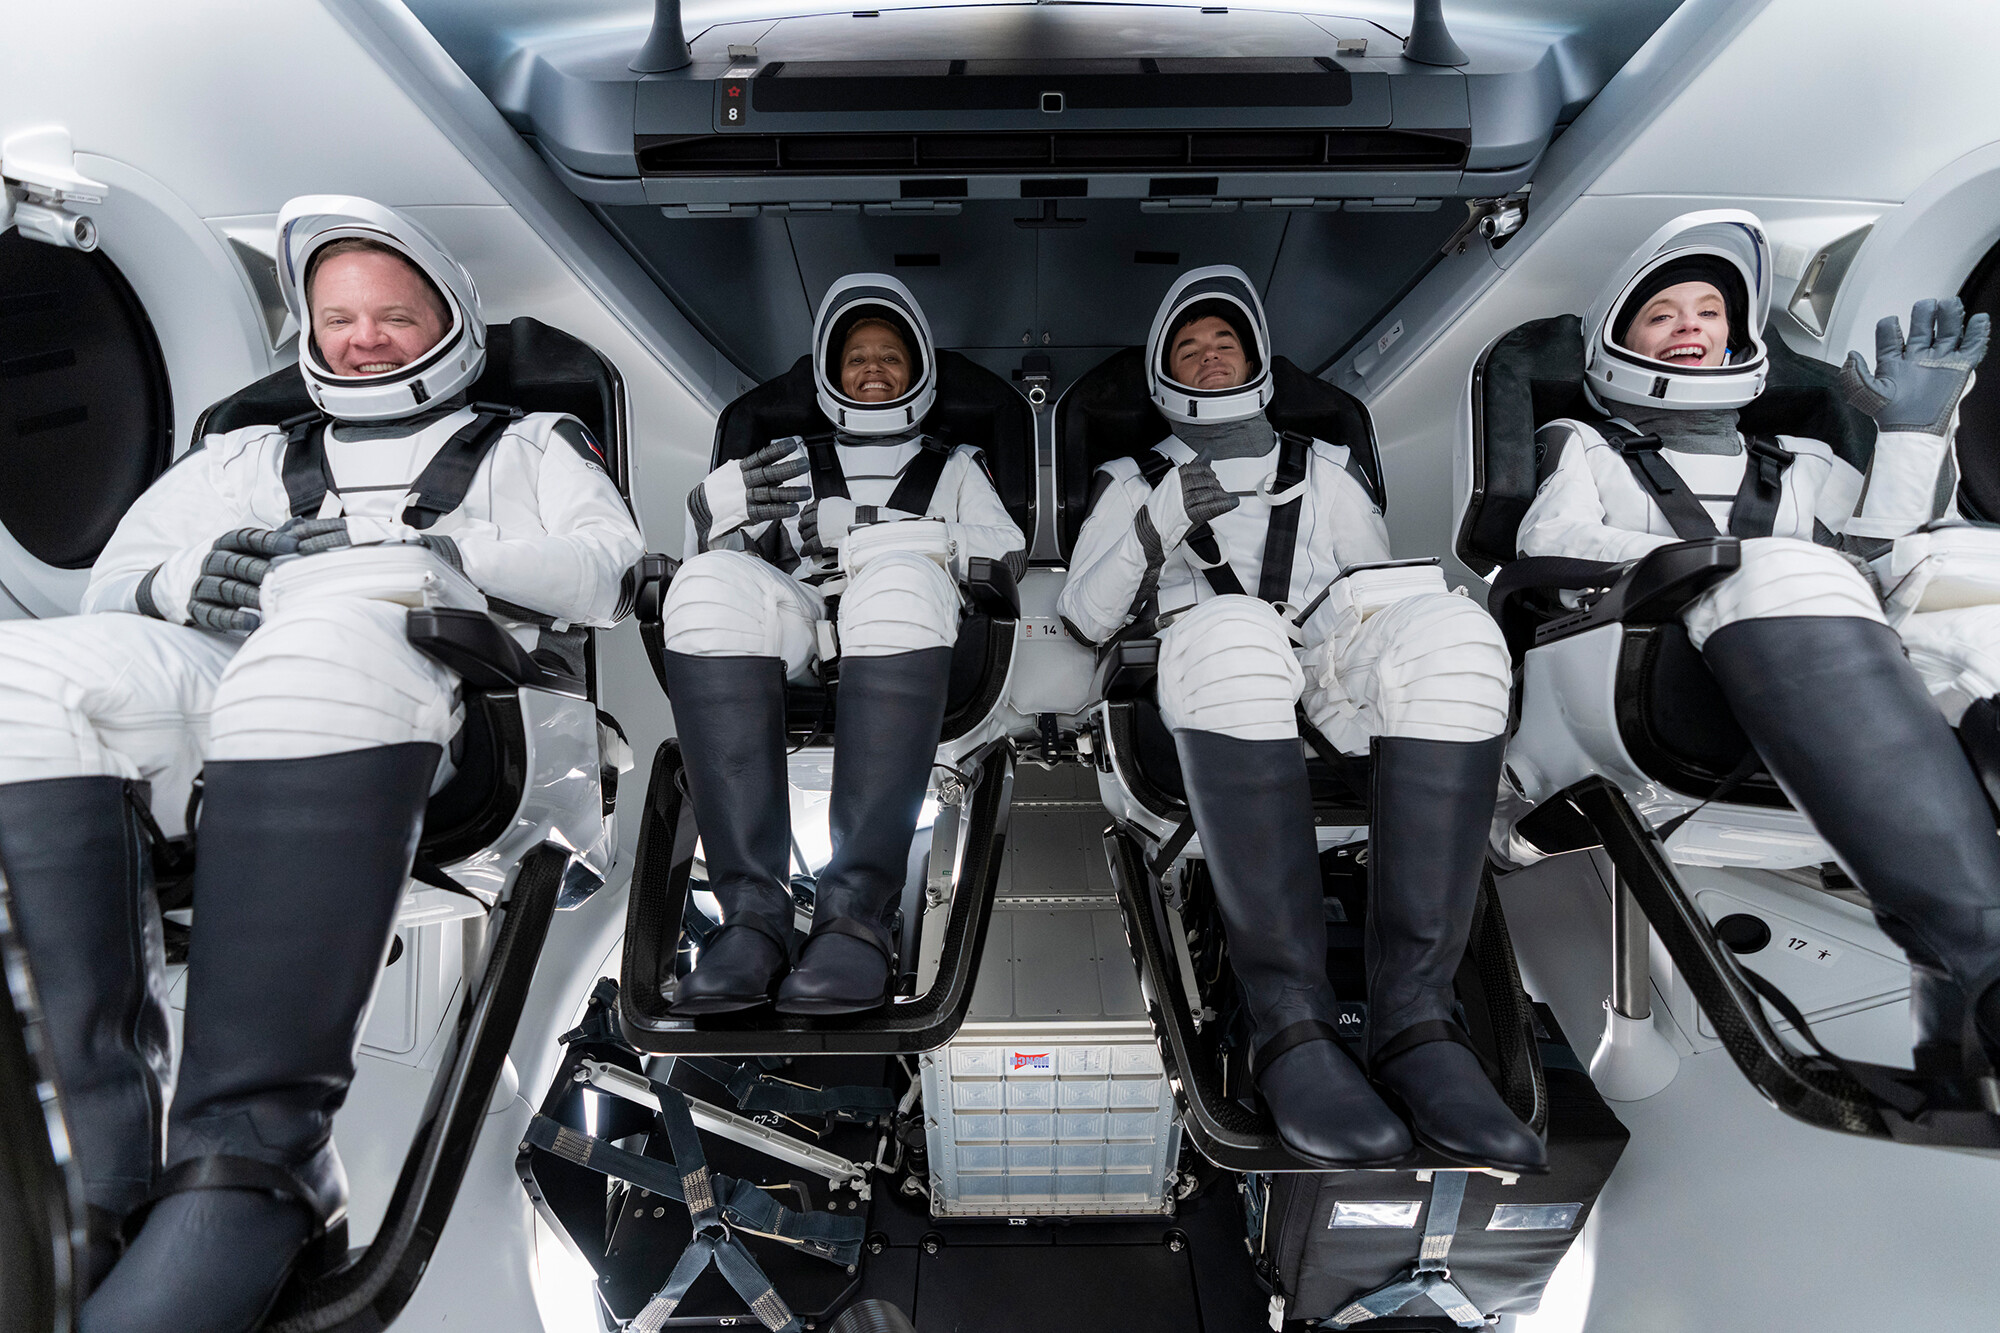 SpaceX launches four people to orbit in company's first-ever tourism mission